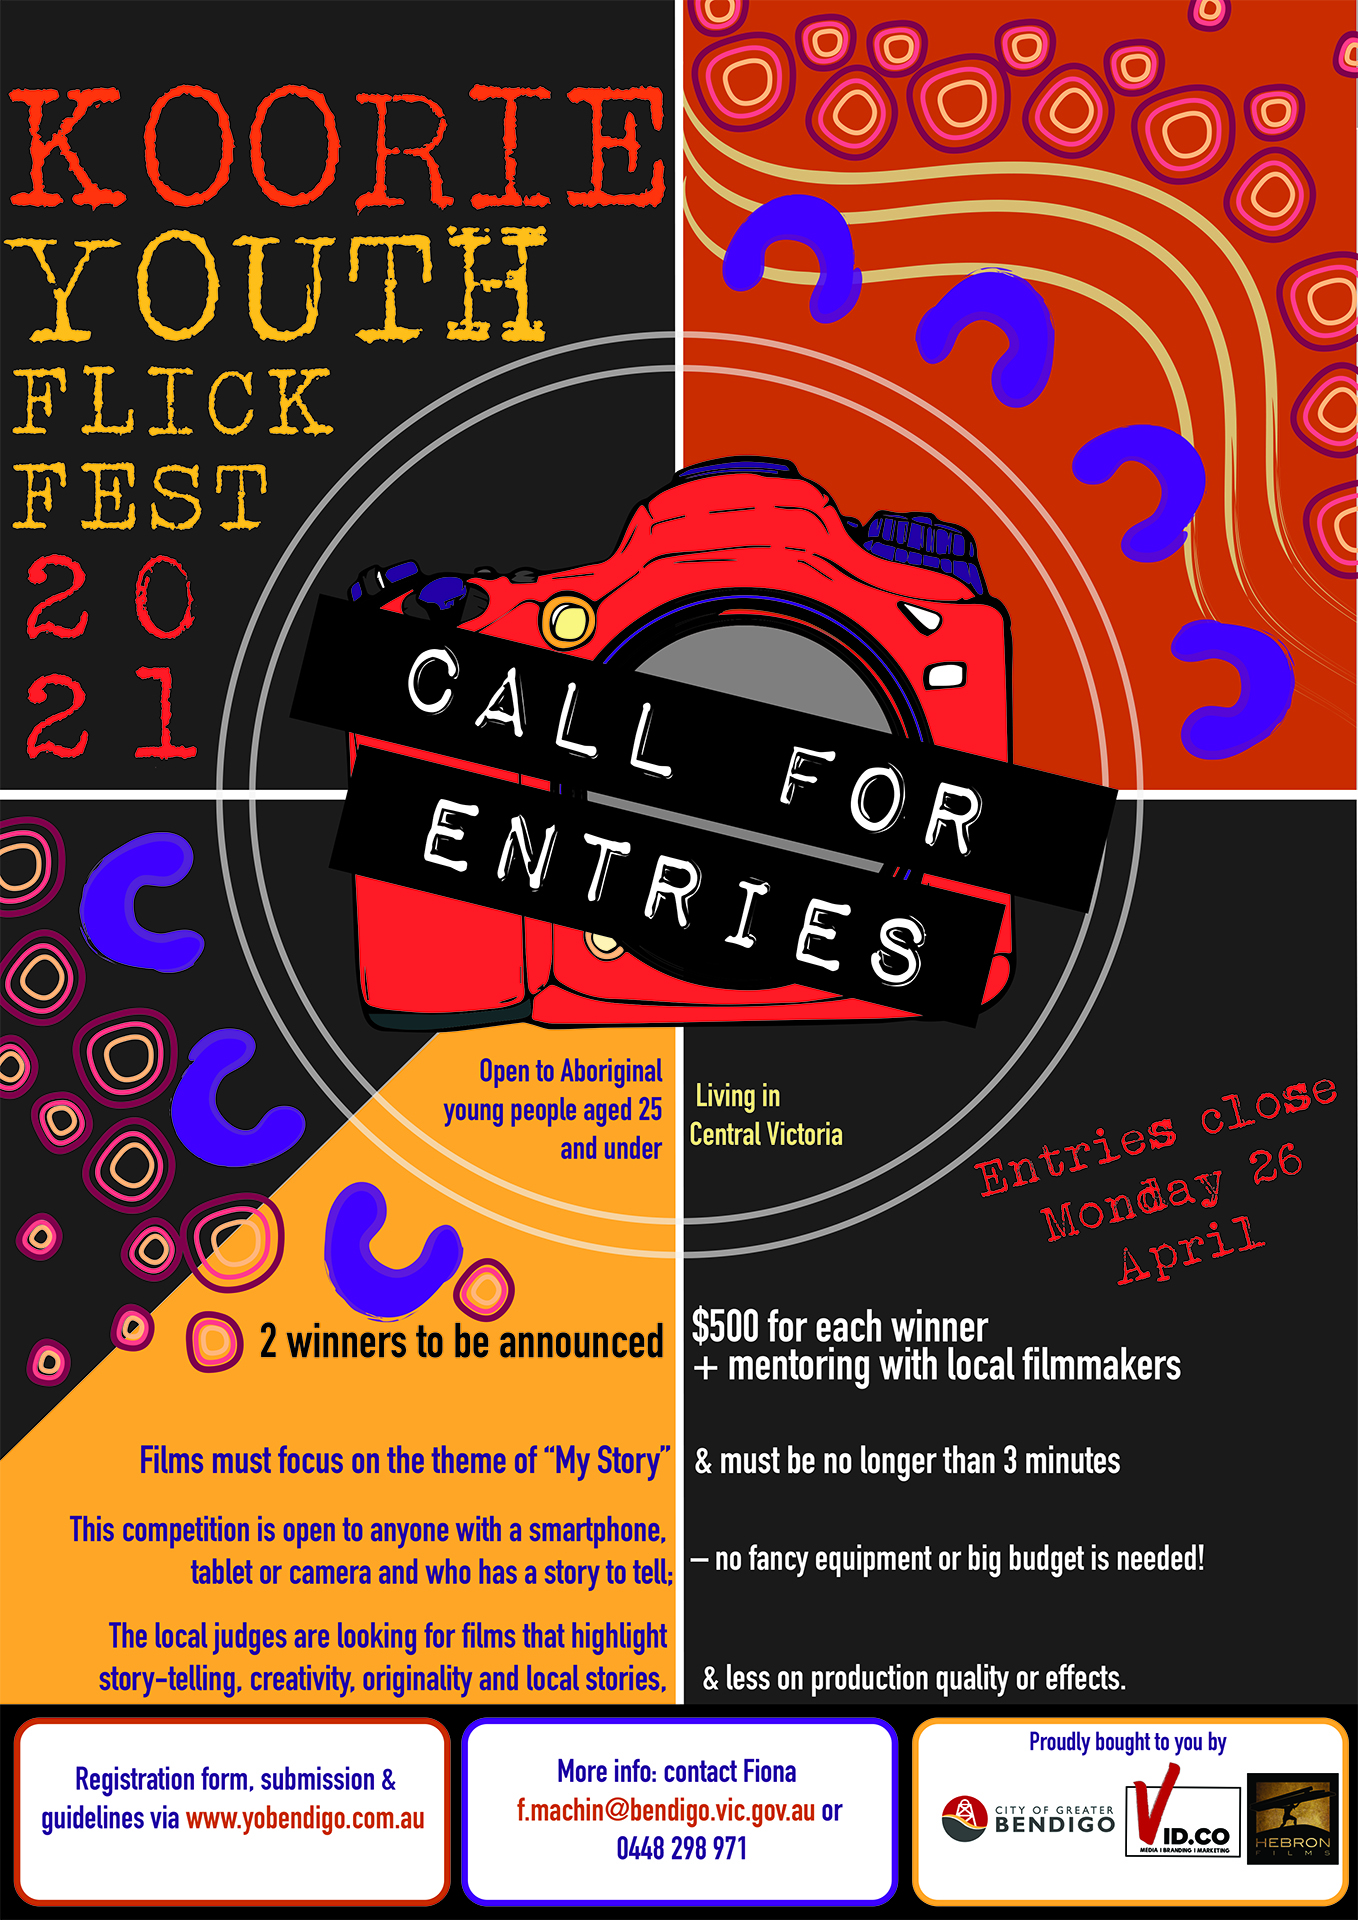 A poster for the Koorie Youth Flick Fest